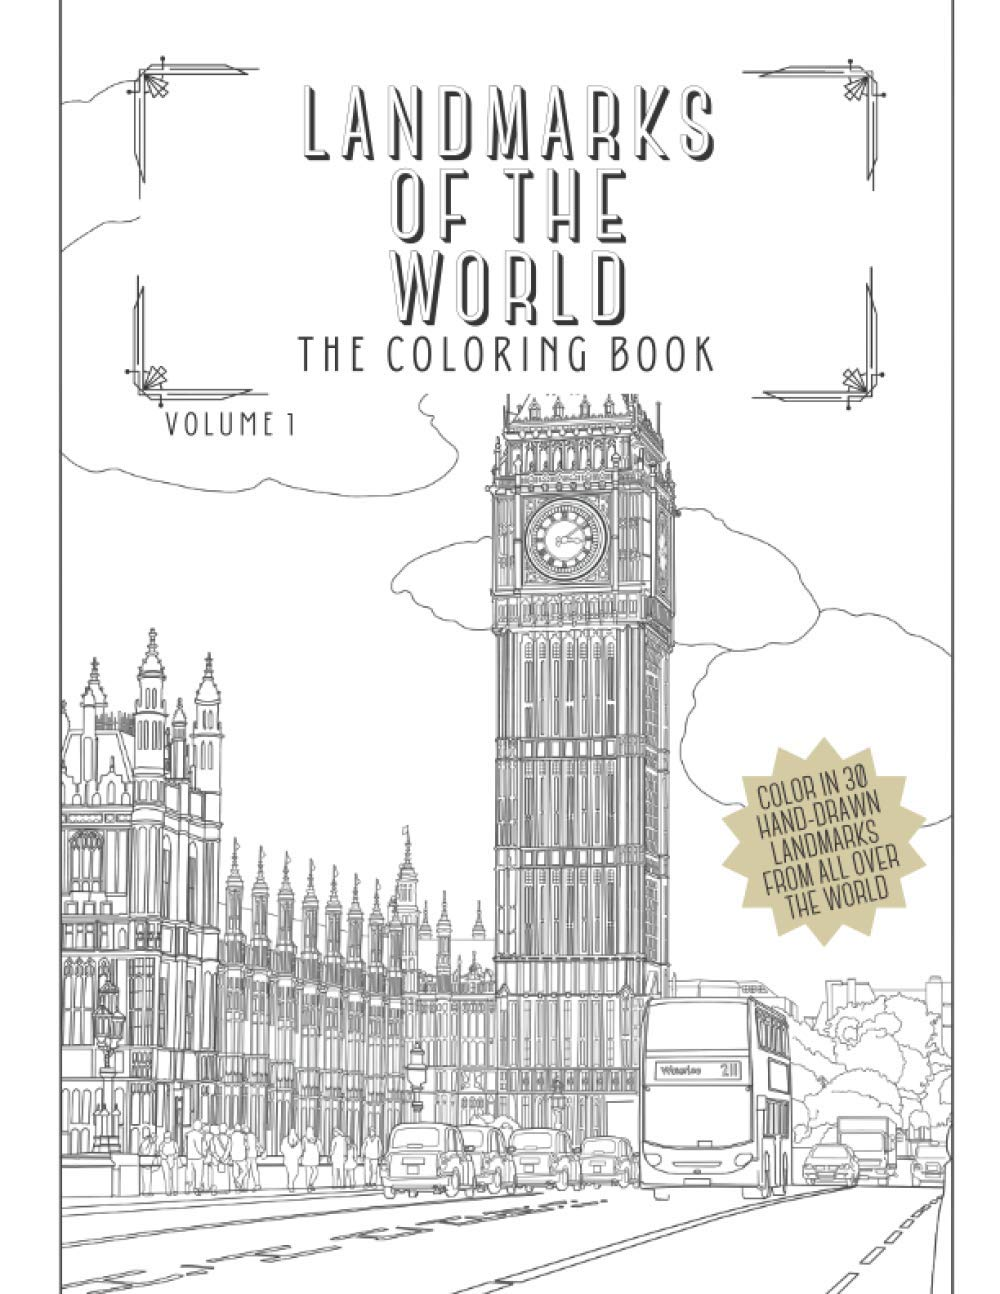 Landmarks Of The World: The Coloring Book: Color In 30 Hand-Drawn Landmarks From All Over The World (Geography & Travel Coloring Books)